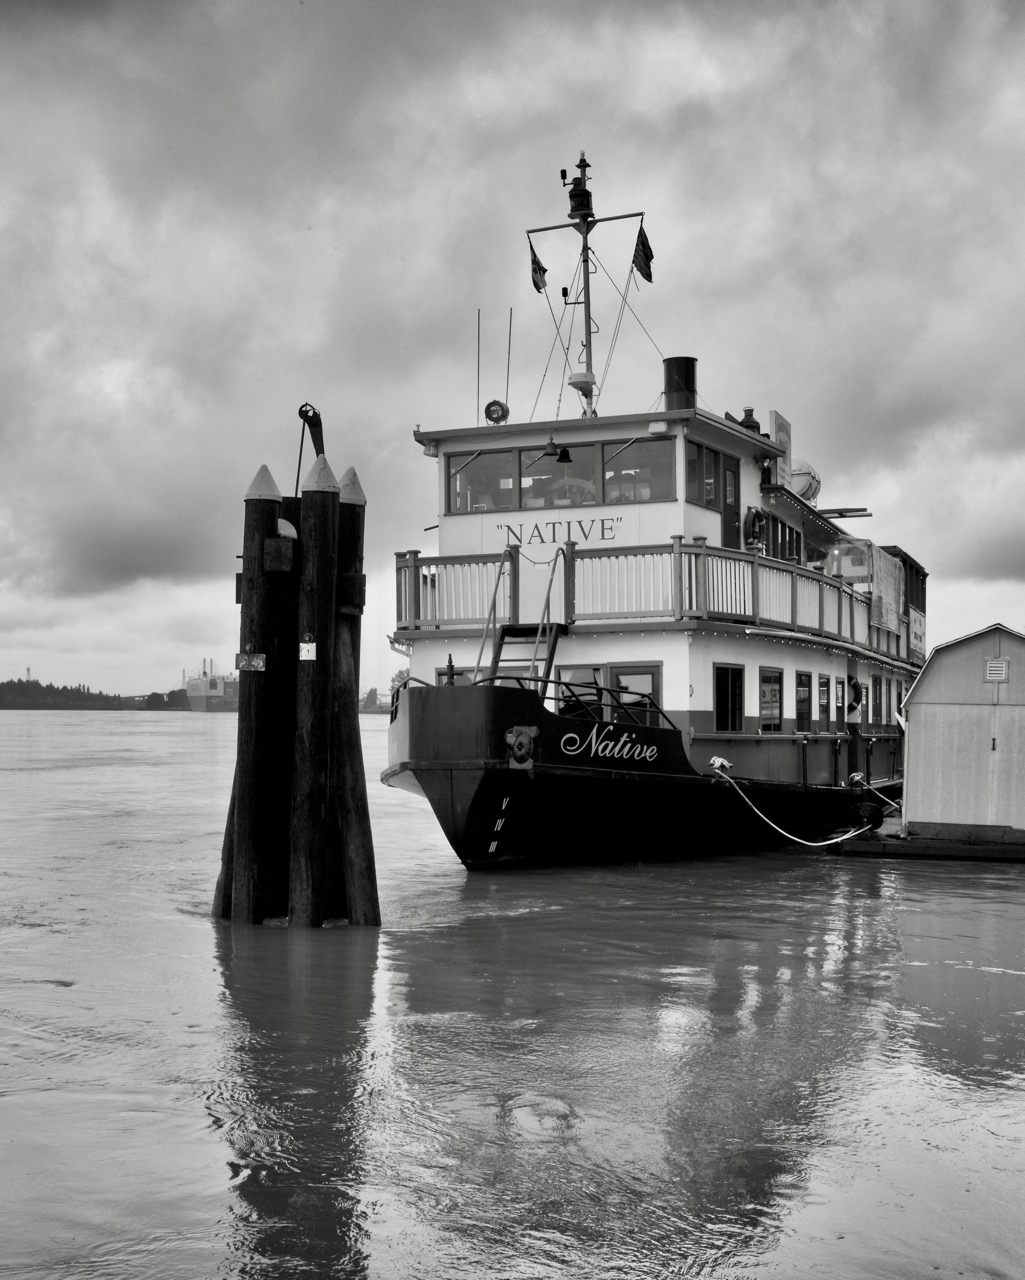 Paddlewheeler passenger ship M.V. Native in the Fraser River.  Built in 1985, her length is 21.34 m. and her breadth is 6.71 m. Her depth is 1.43 m.  Paddlewheeler vessels have a long history on the Fraser River. Their shallow draft is well-suited for navigating a river with a large volume of sediment.  An average of 3 million cubic metres of sediment is deposited annually in the navigable channel of the Fraser River.